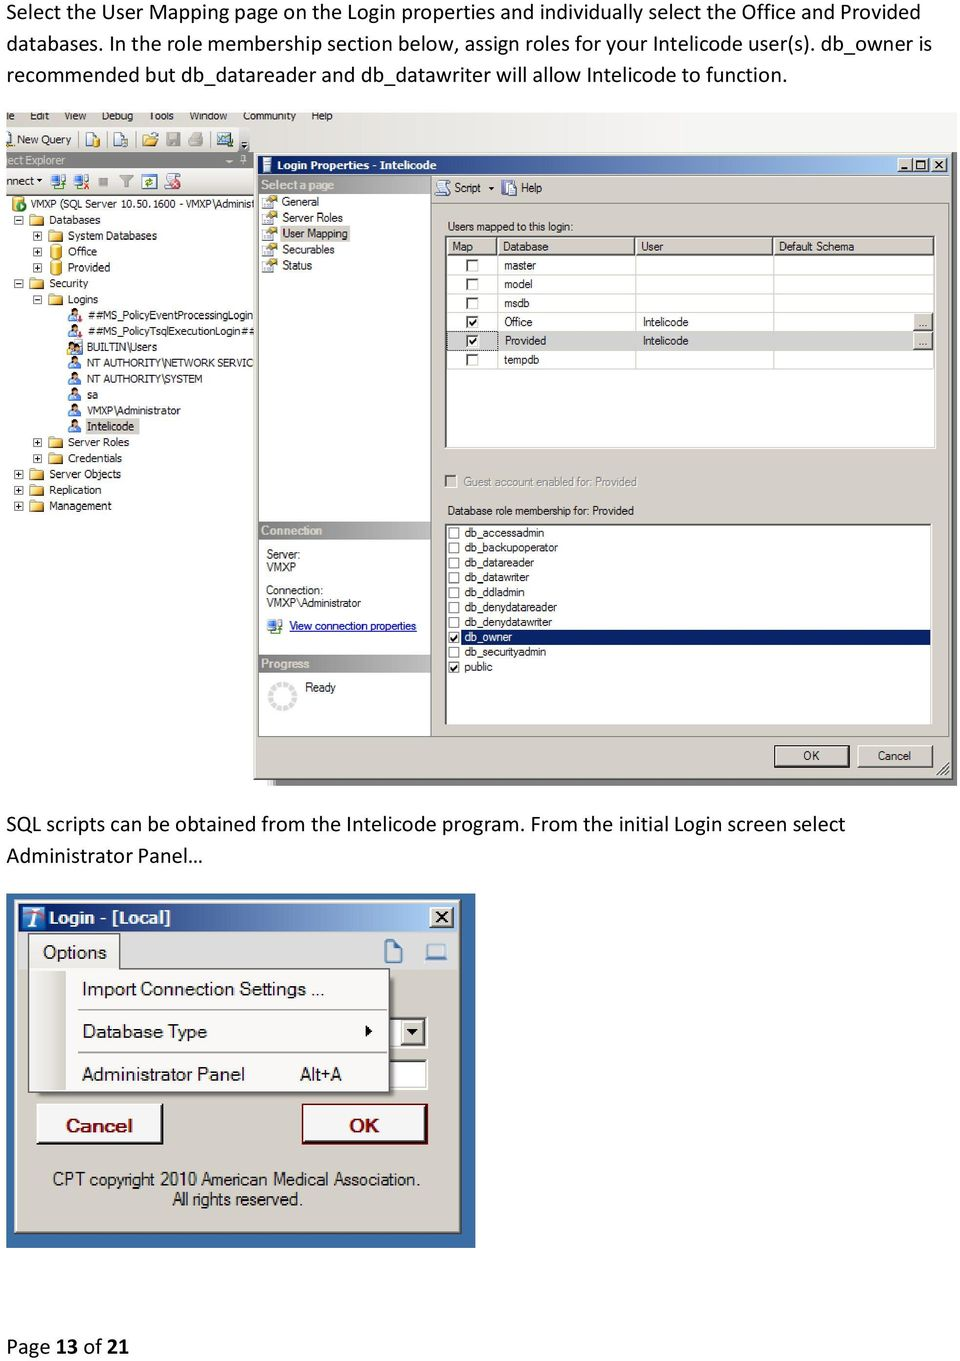 db_owner is recommended but db_datareader and db_datawriter will allow Intelicode to function.